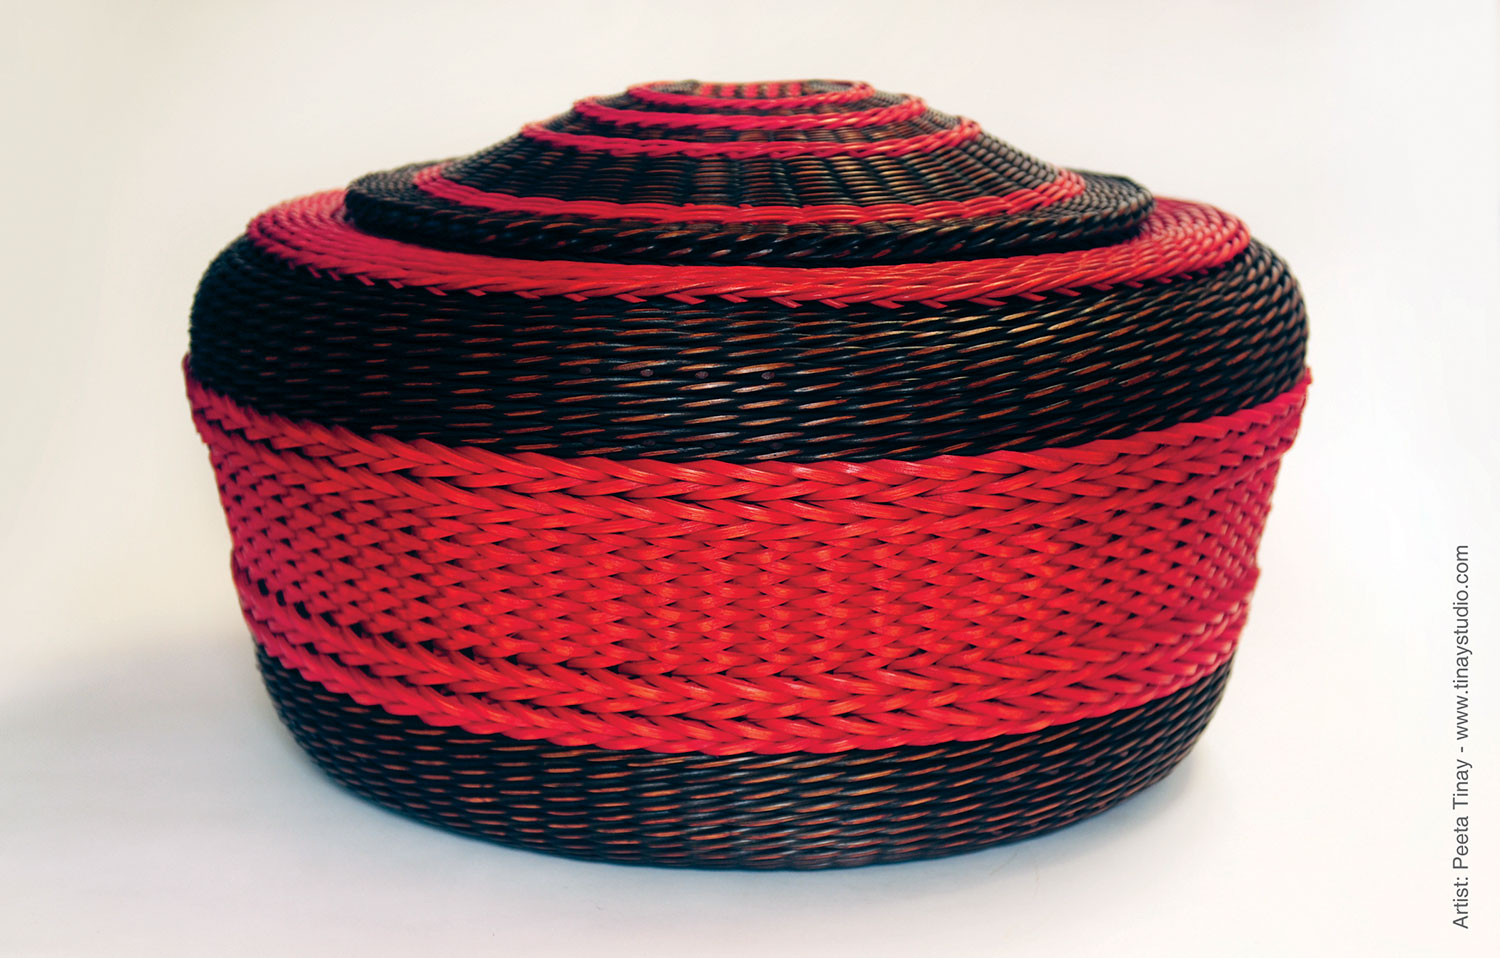 Peeta-Tinay-red-brown-lidded-basket.jpg